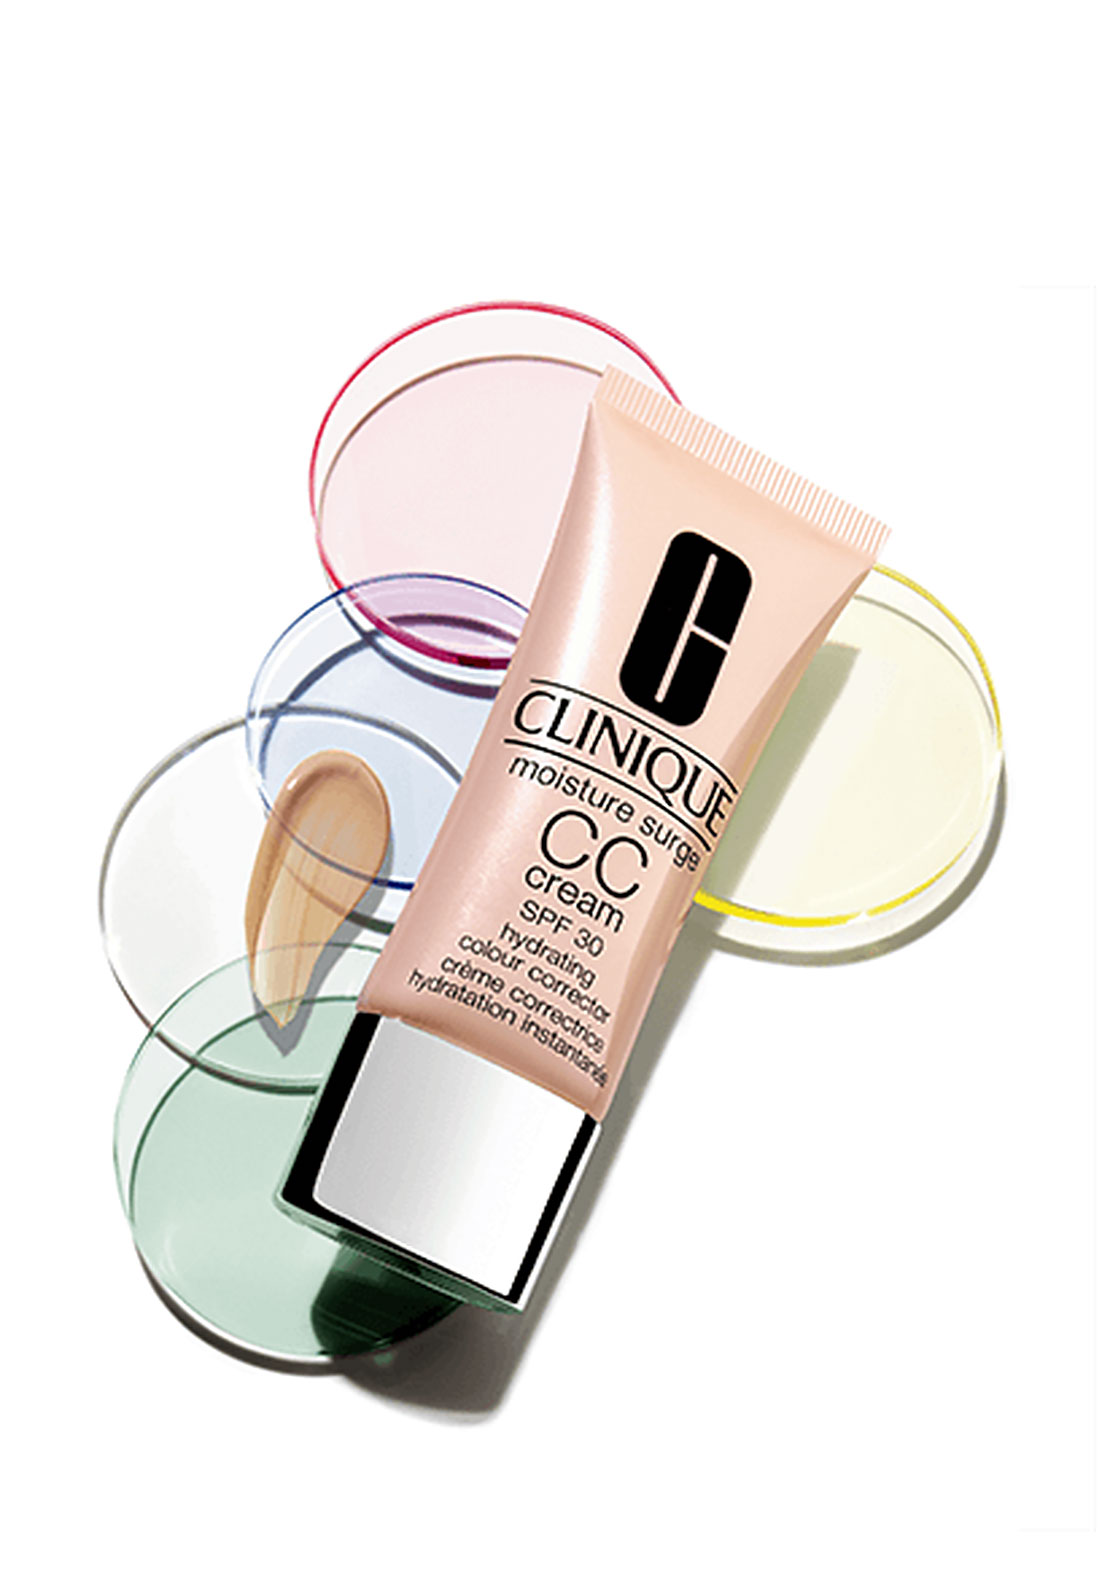 Clinique Moisture Surge CC Cream SPF 30 Hydrating Colour Corrector, Natural Fair